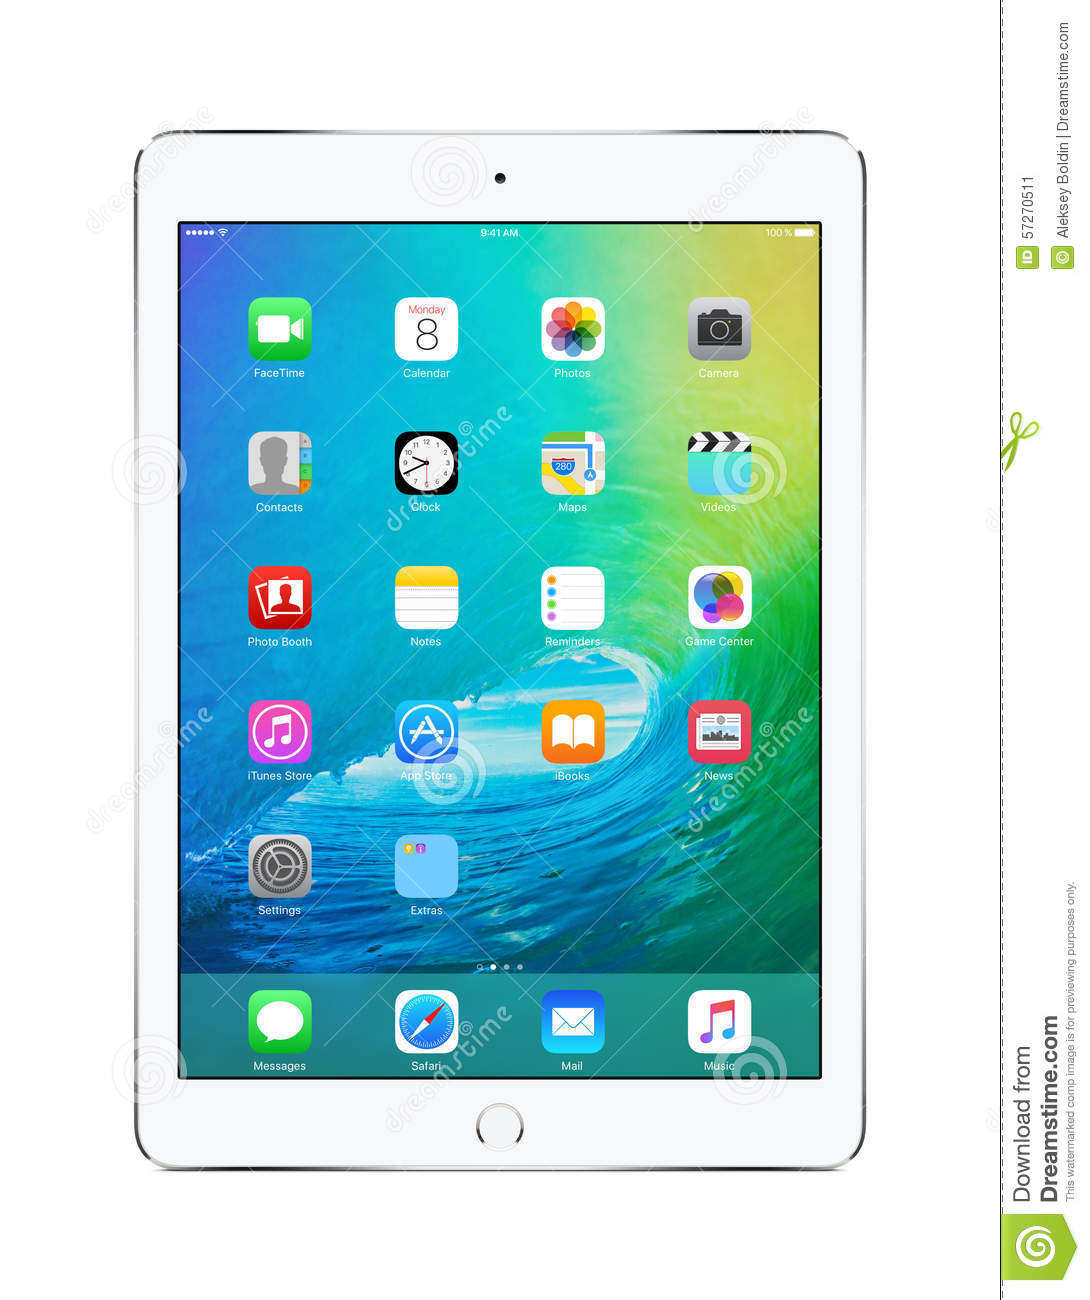 how to change your apple id on ipad air 2